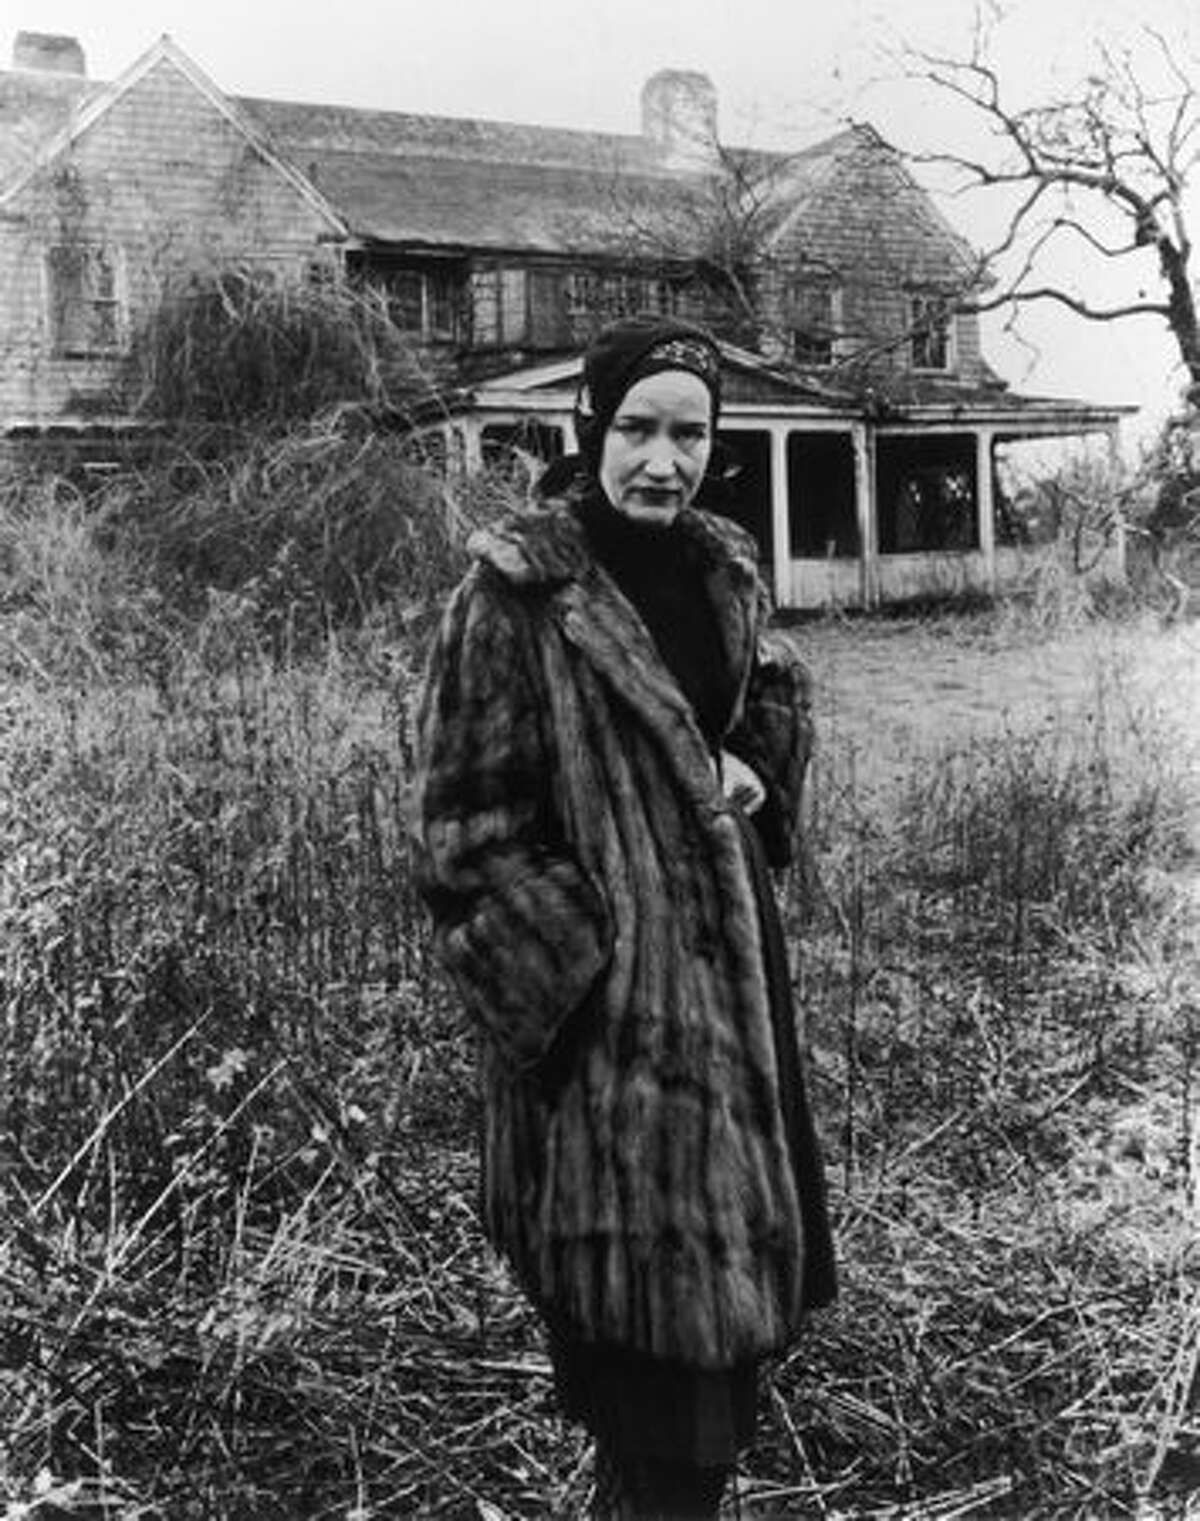 American socialite Edith Beale Jr. (1917 - 2002) wears a fur coat in front of her dilapidated Long Island mansion in a still from the 1975 documentary